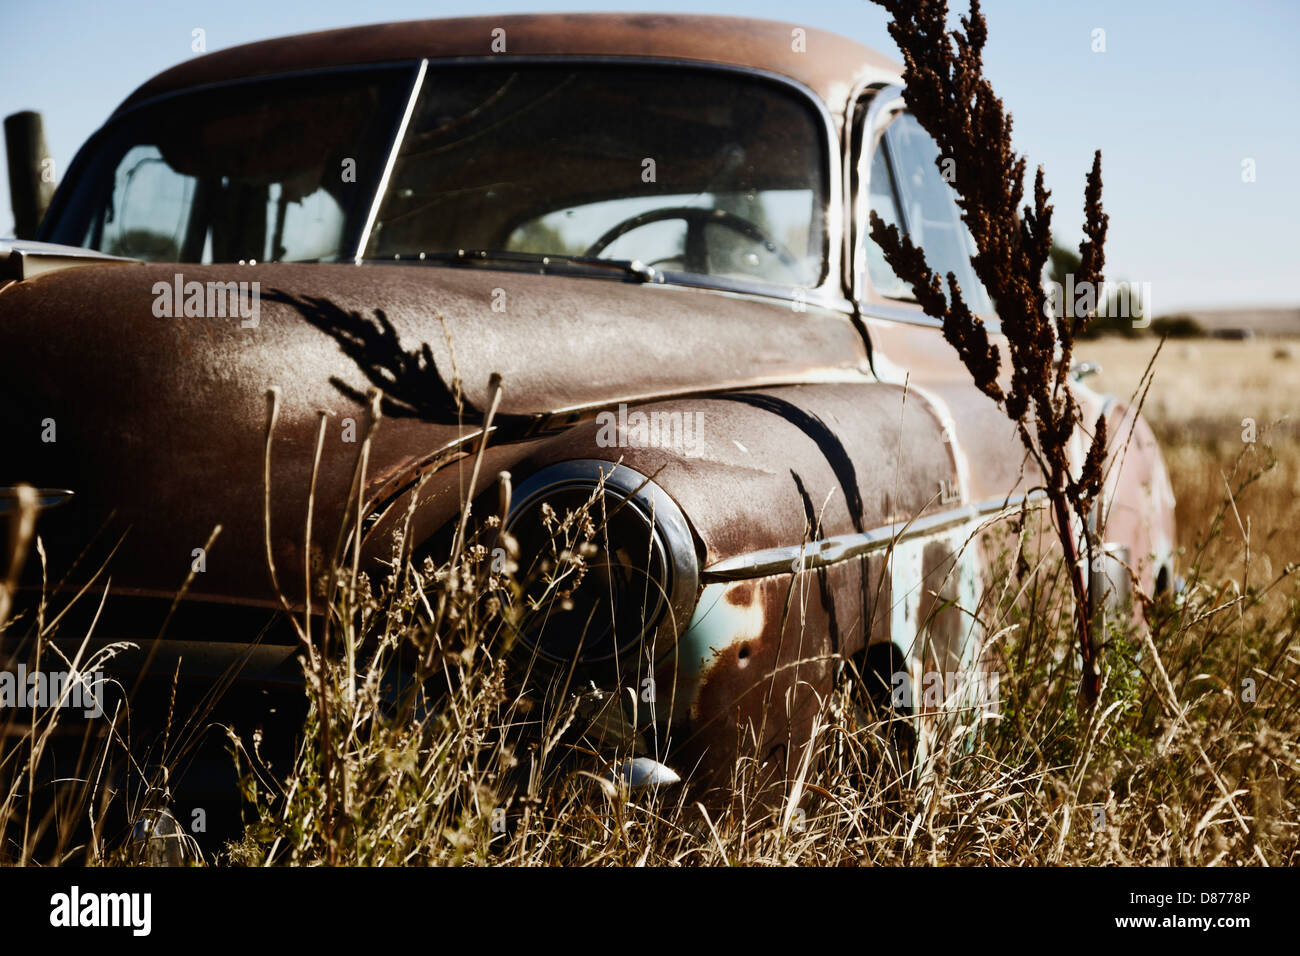 Canada, Junk yard with old US cars Stock Photo: 56707750 - Alamy